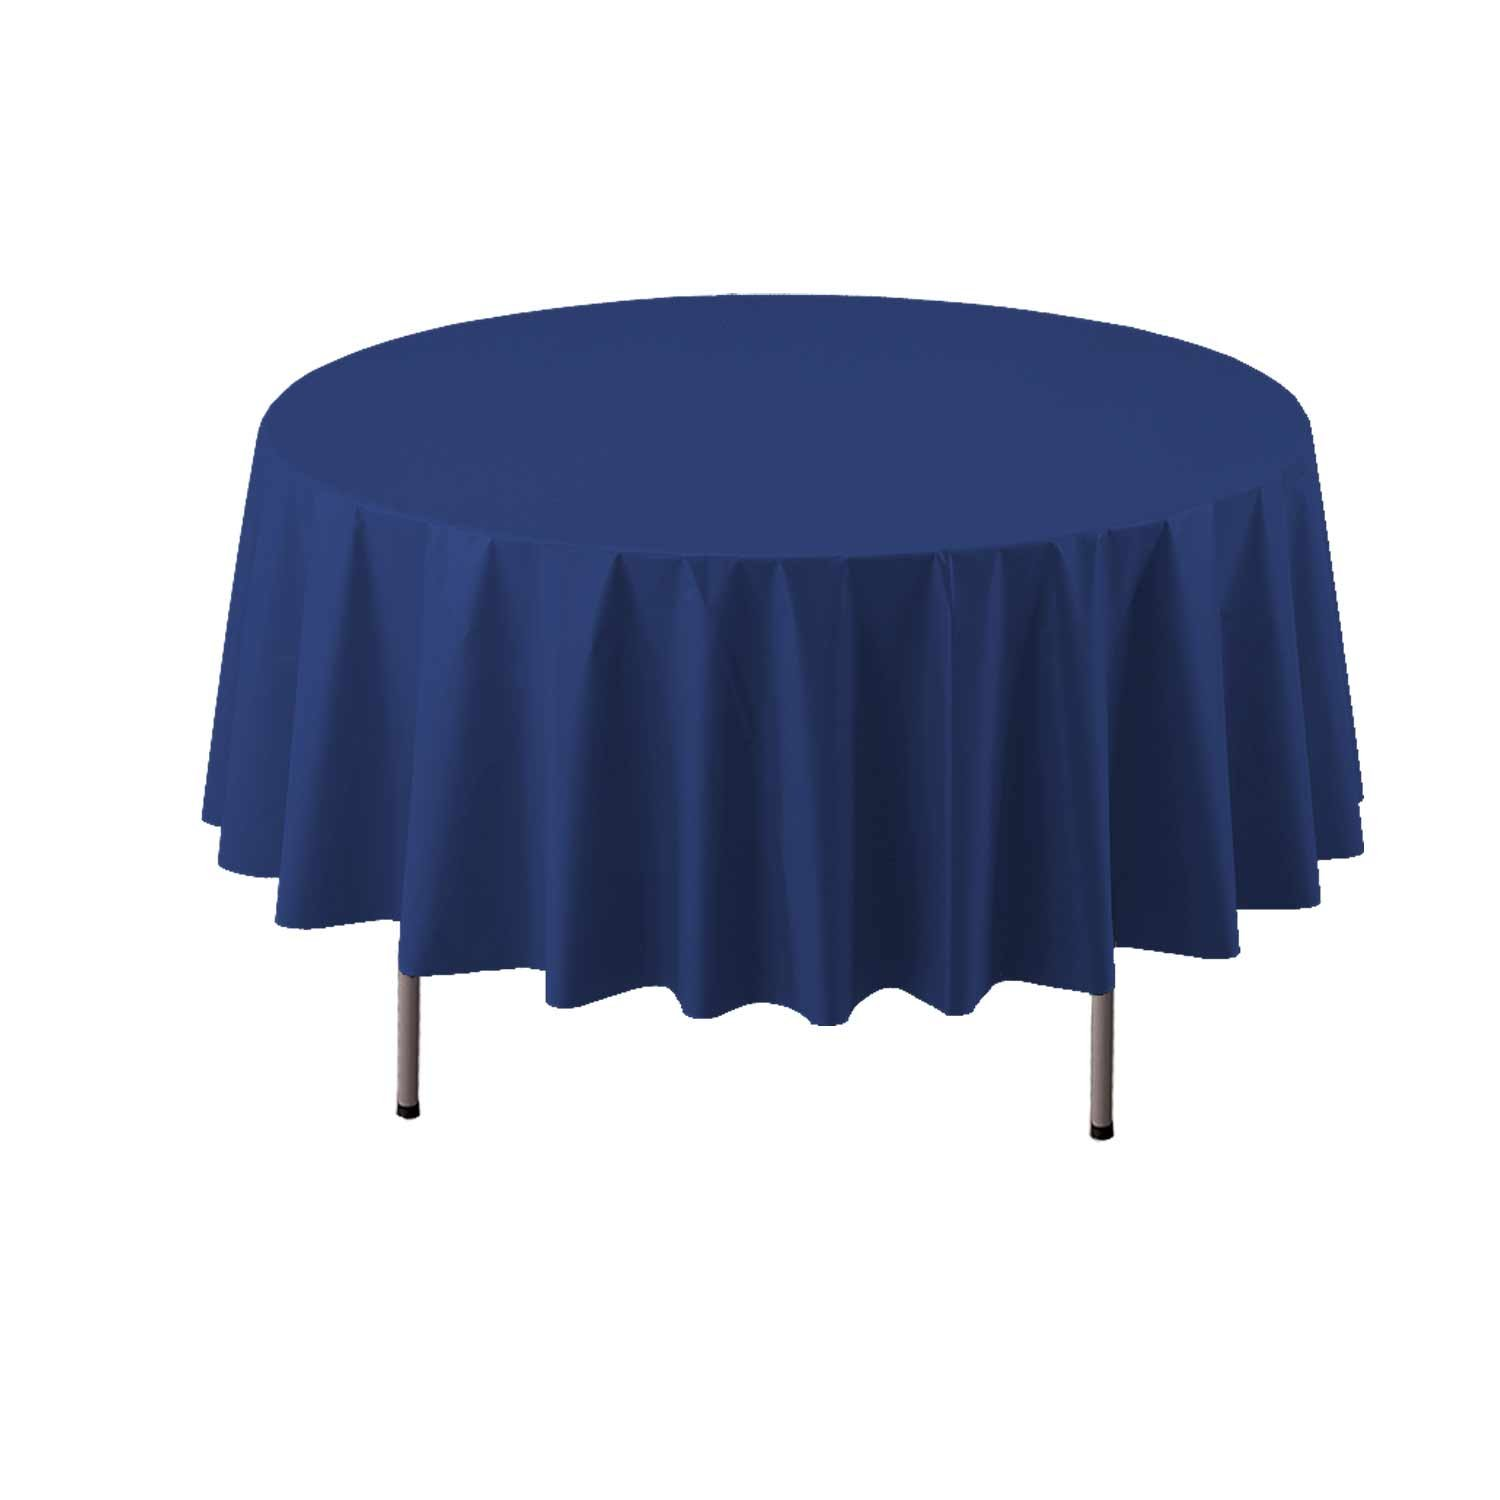 Party Essentials Heavy Duty 84'' Round Plastic Table Cover Available in 22 Colors, Navy Blue